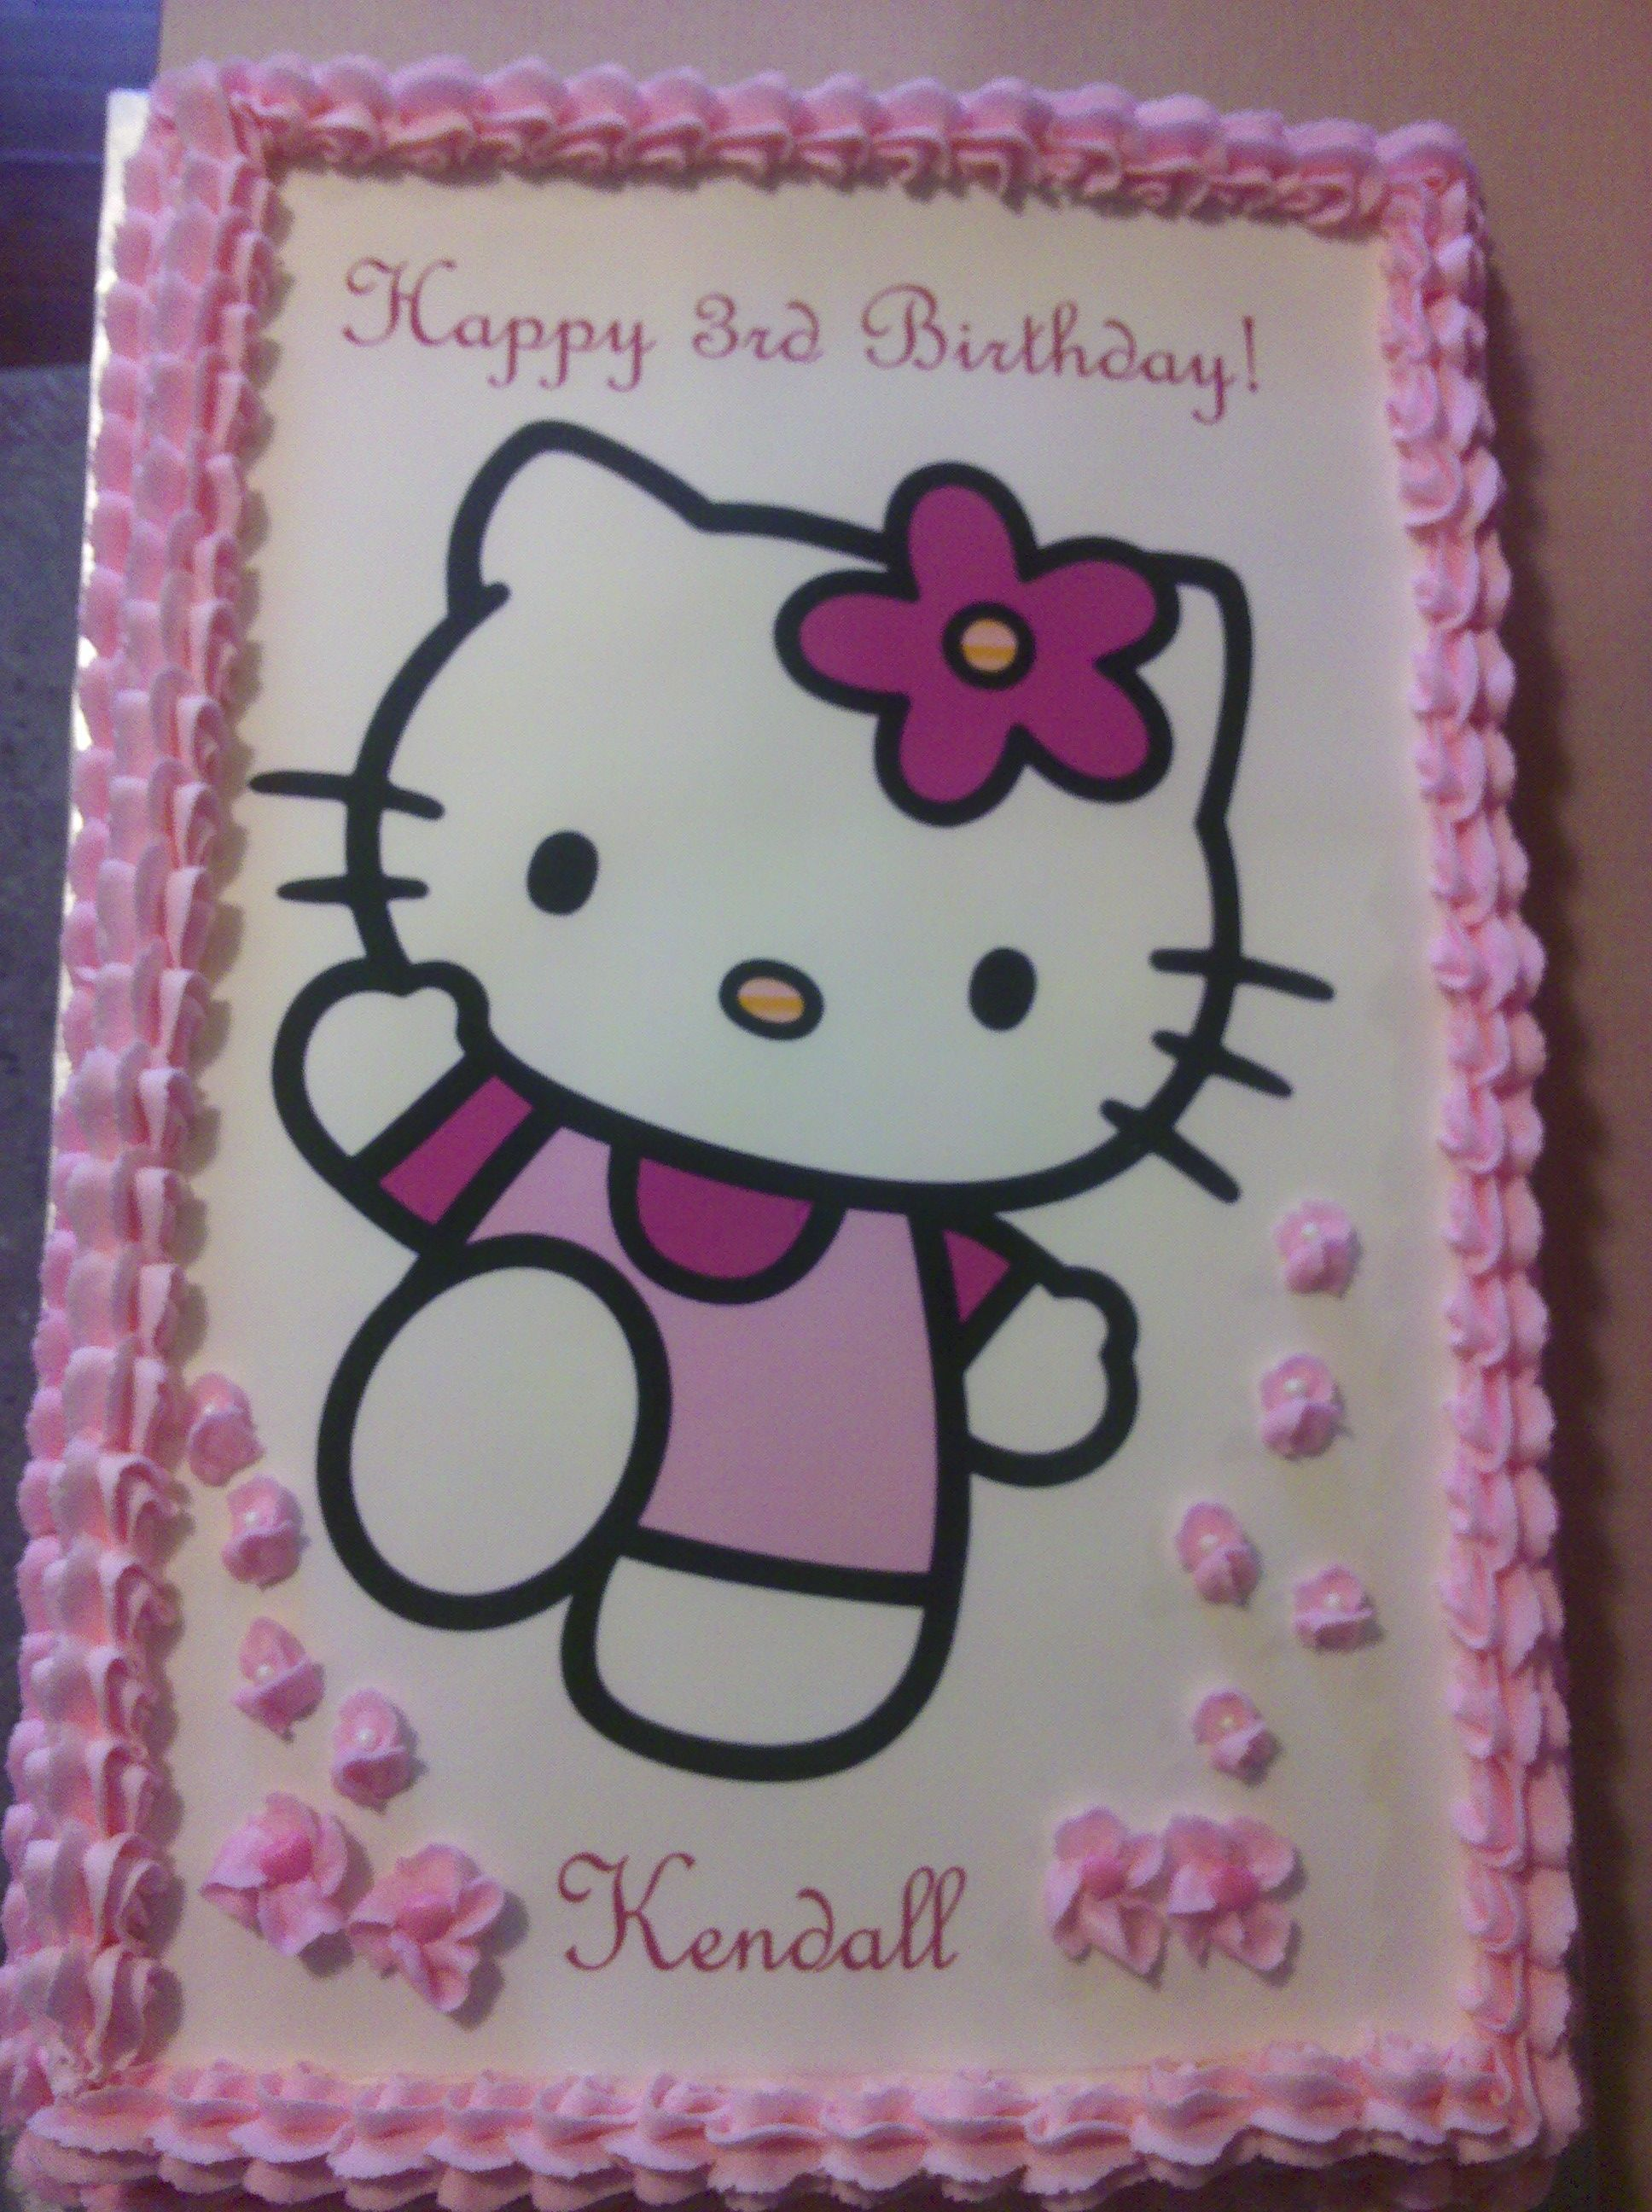 Happy Birthday Kendall Hello Kitty Cake With Images Hello Kitty Hello Kitty Cake Hello Kitty Party